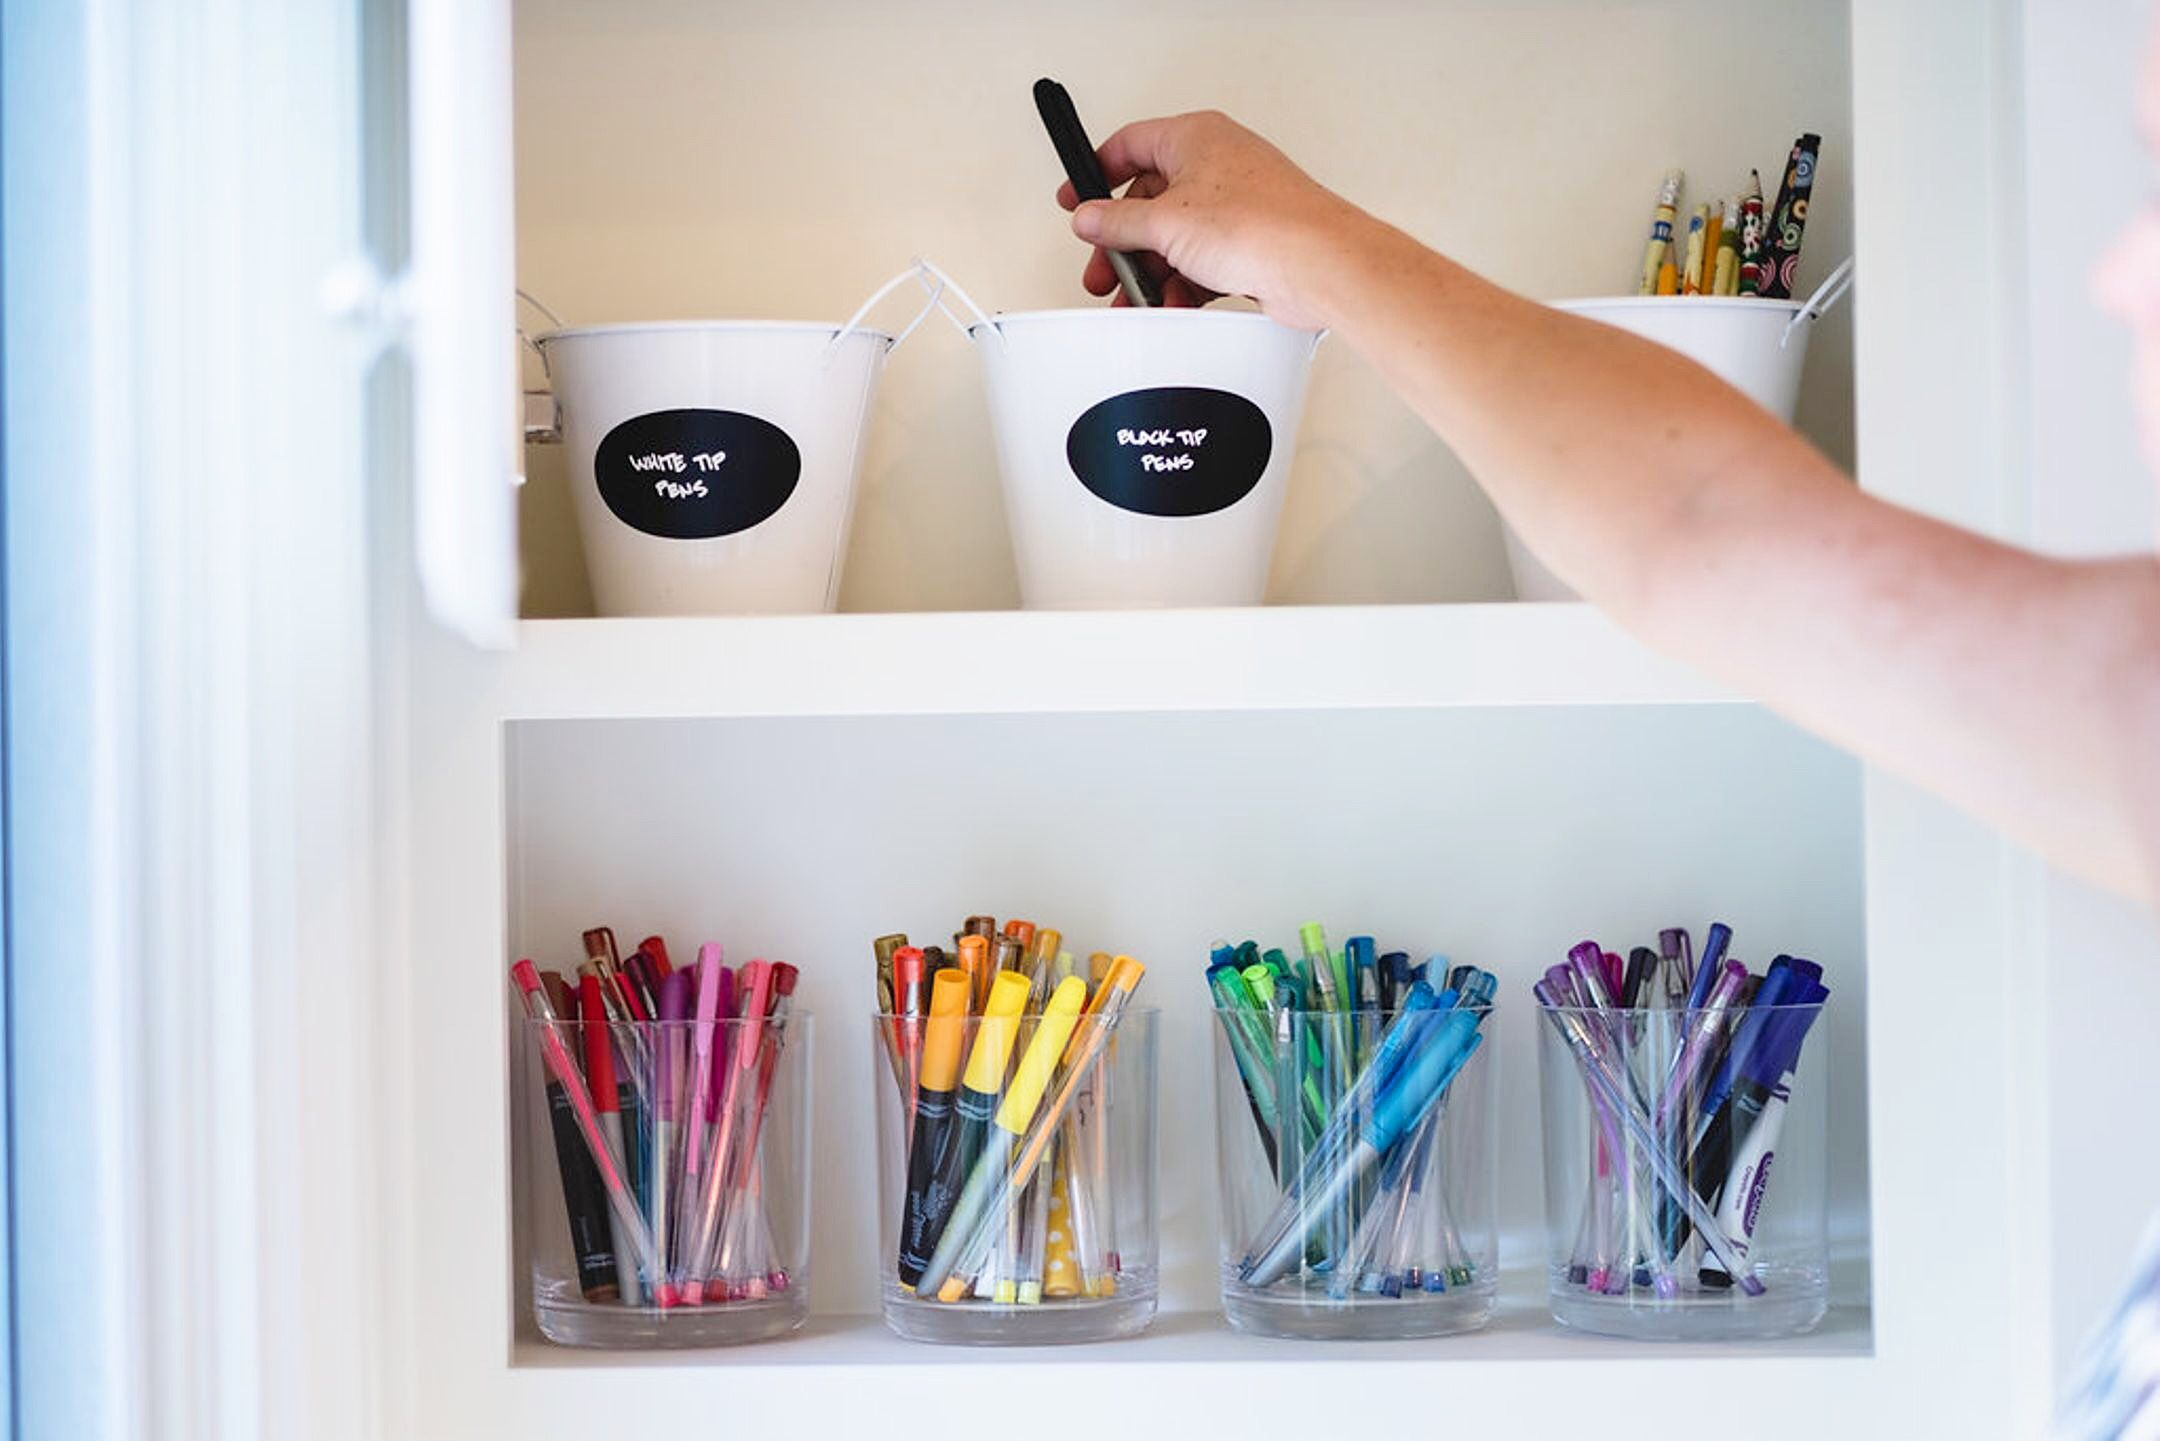 NEAT Method Organized Crafts Diy Ideas Arts And Art Supplies Storage Spaces Colorful